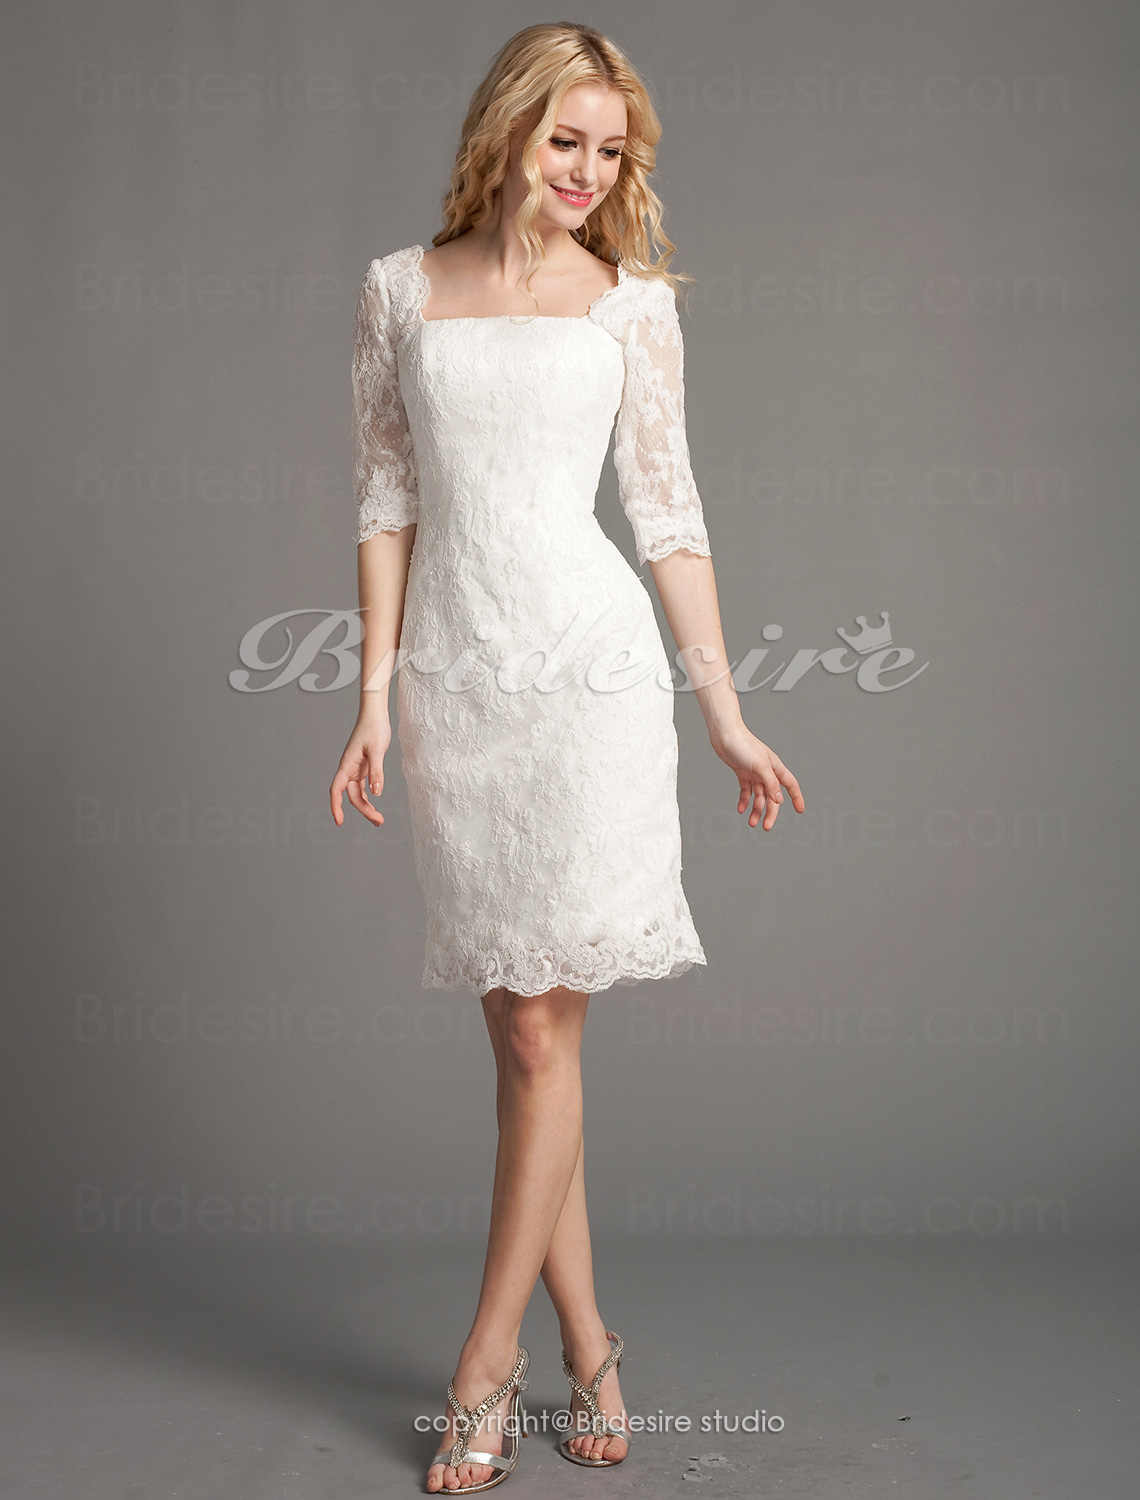 Sheath/Column Lace Short/Mini Square Wedding Dress